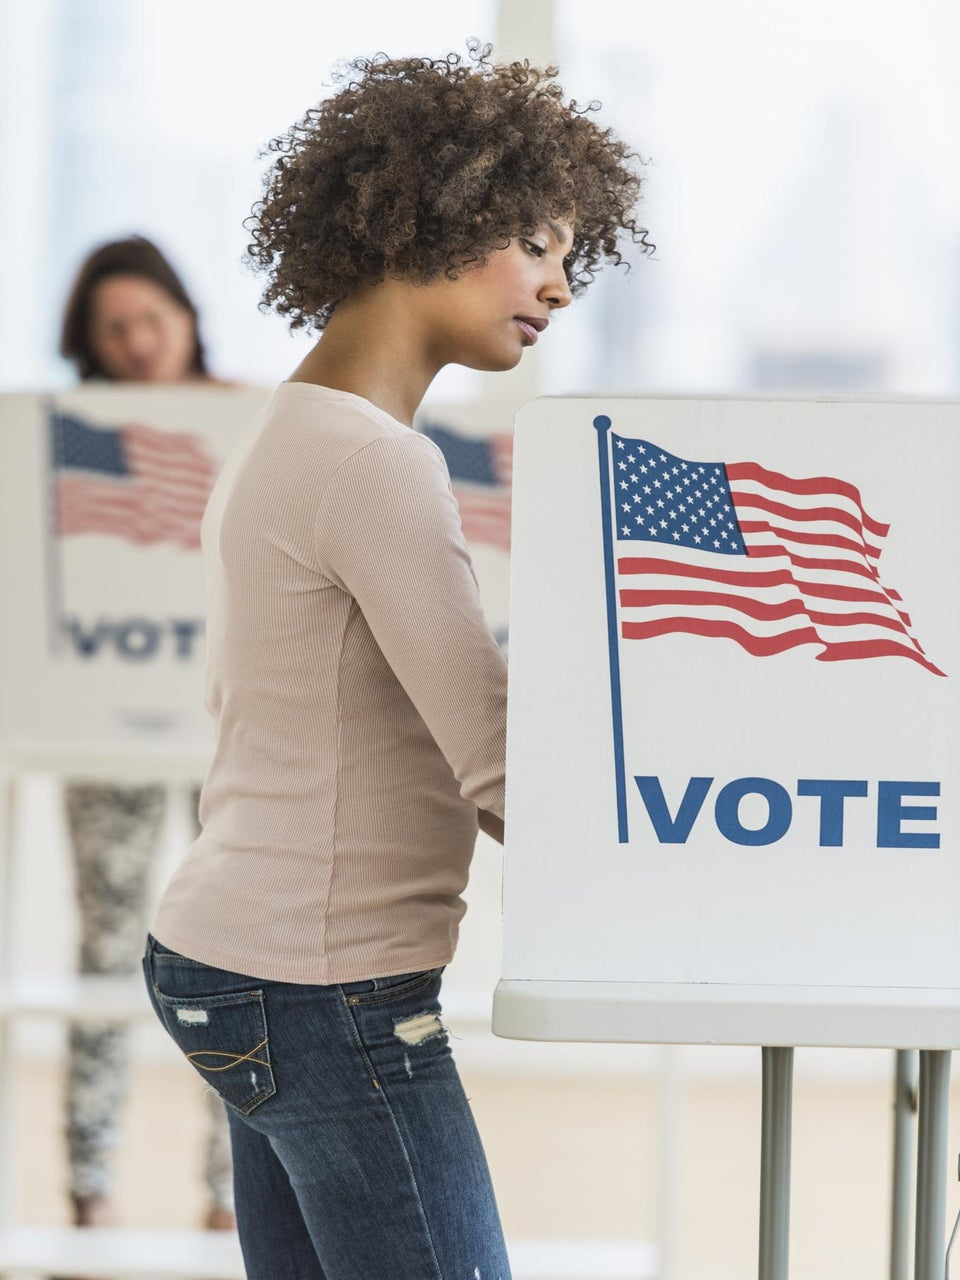 ESSENCE and Black Women's Roundtable Announce Power of the Sister Vote Poll